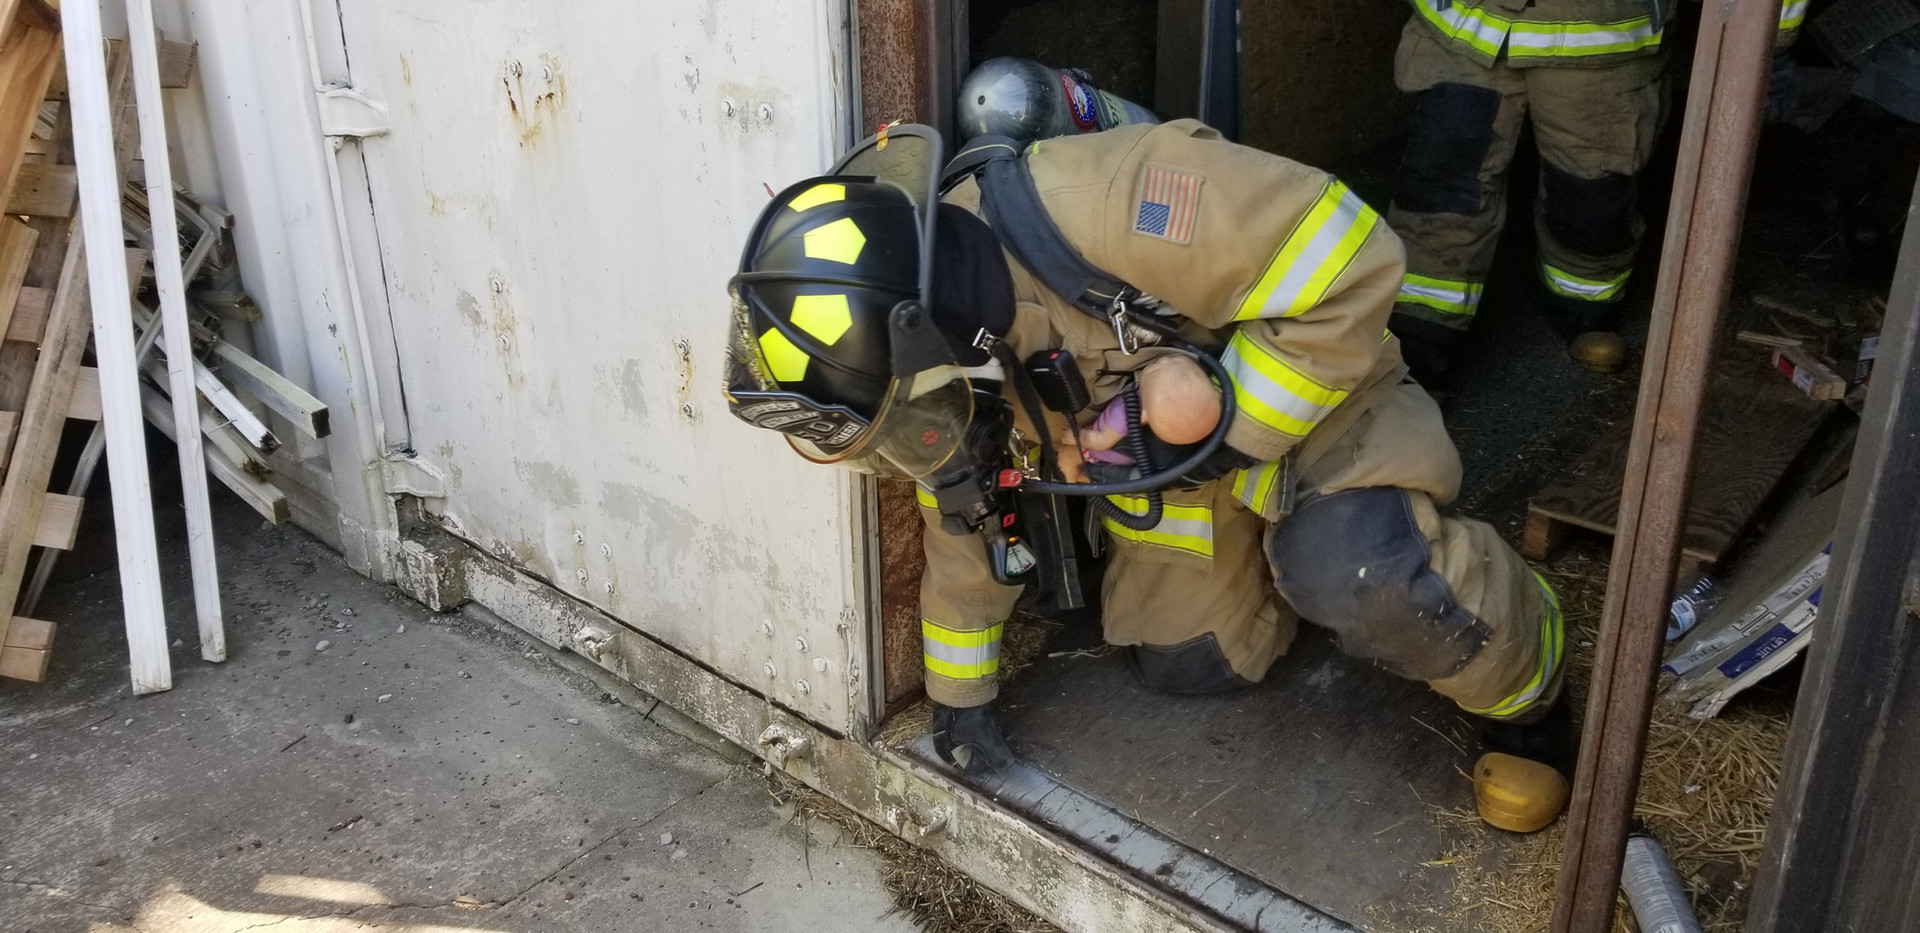 Firefighters crawling in Hot Box Baby Re